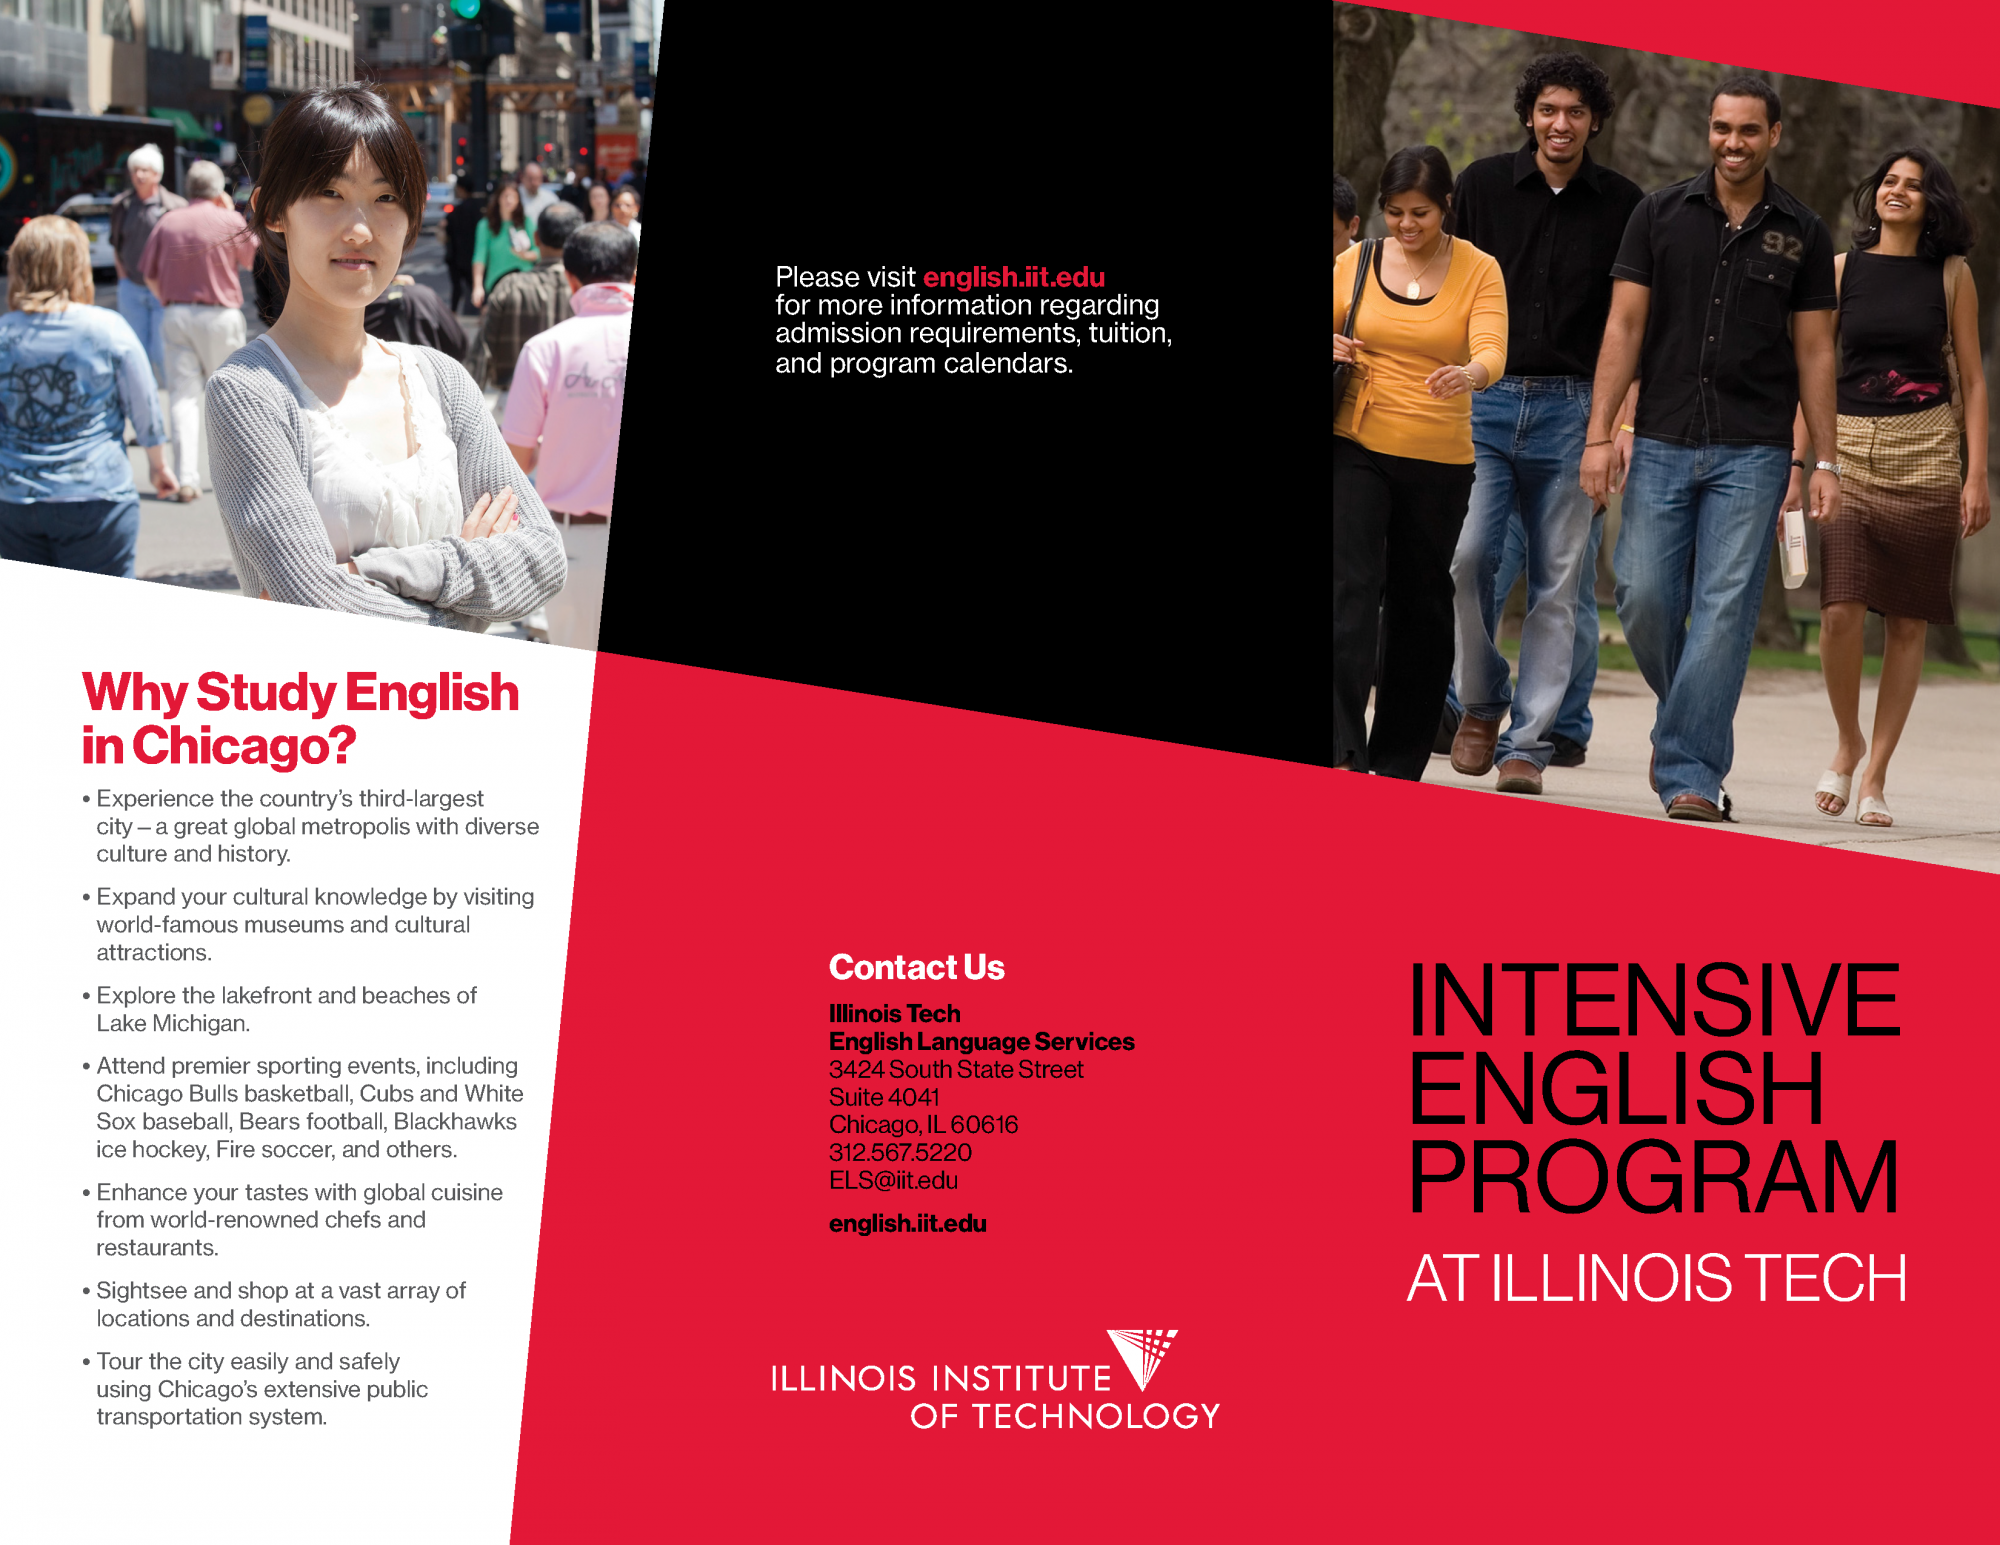 Intensive English Program at Illinois Tech Brochure